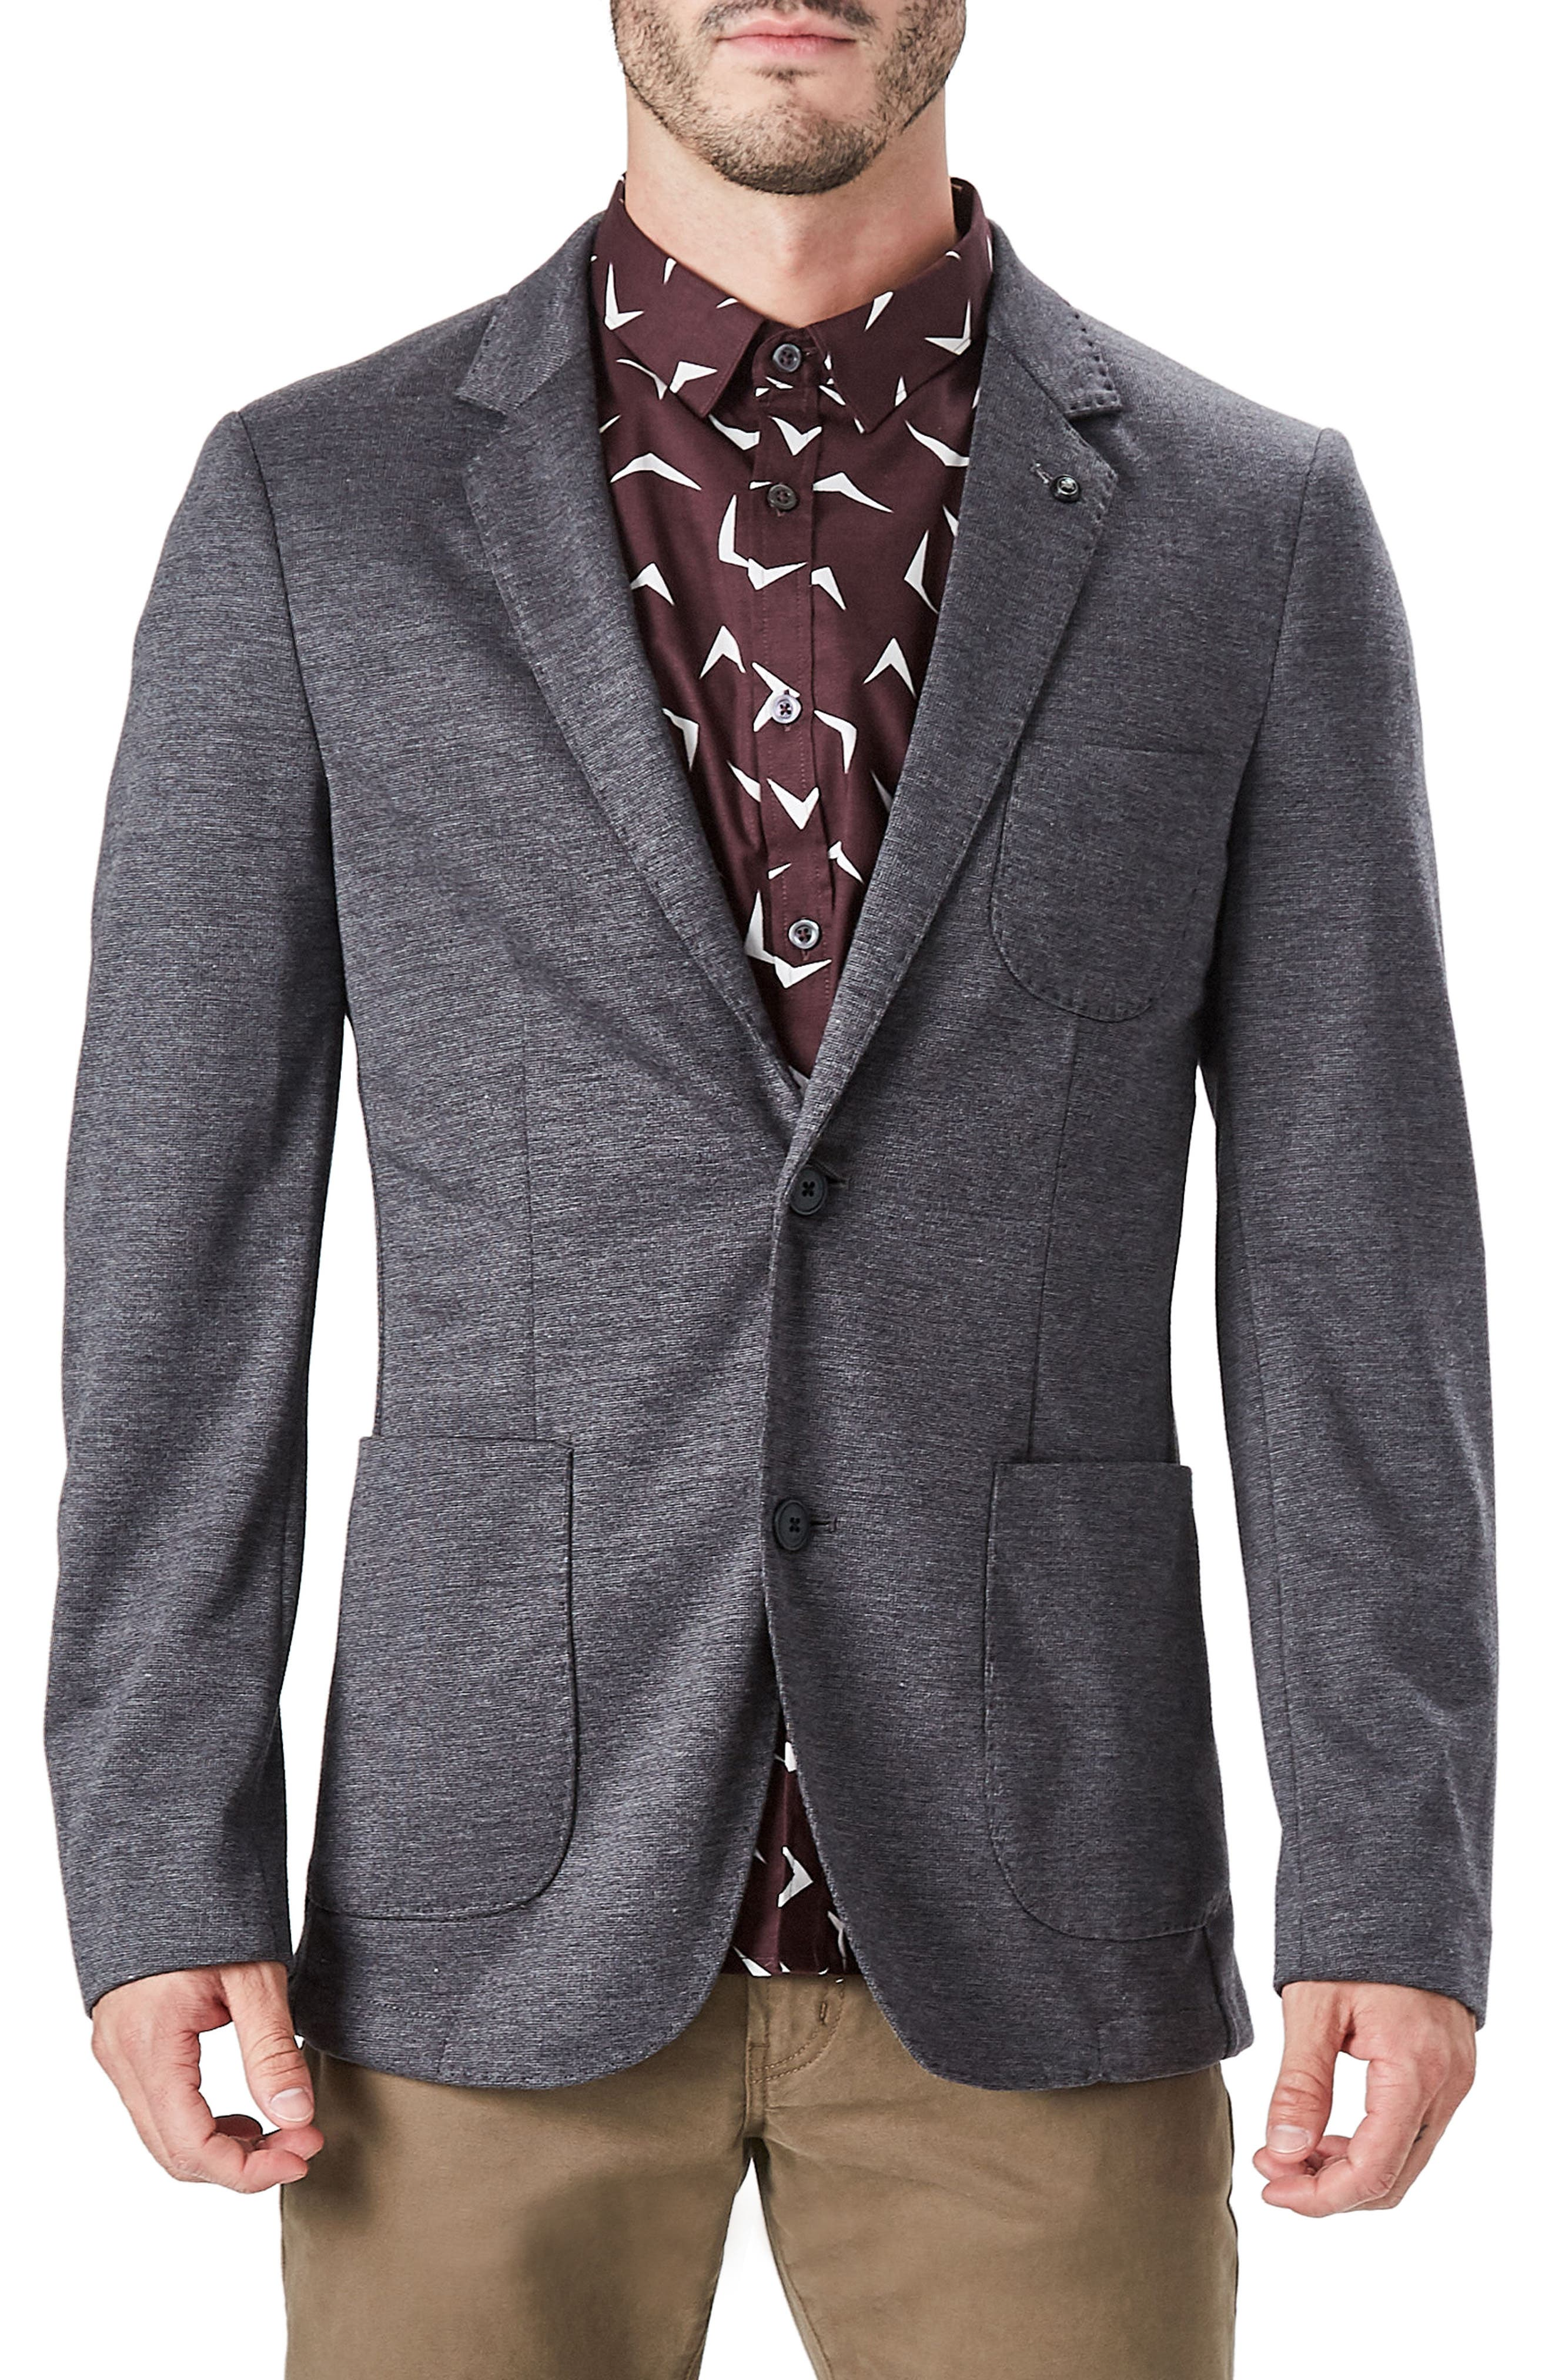 Massa Casual Blazer,                         Main,                         color, 020